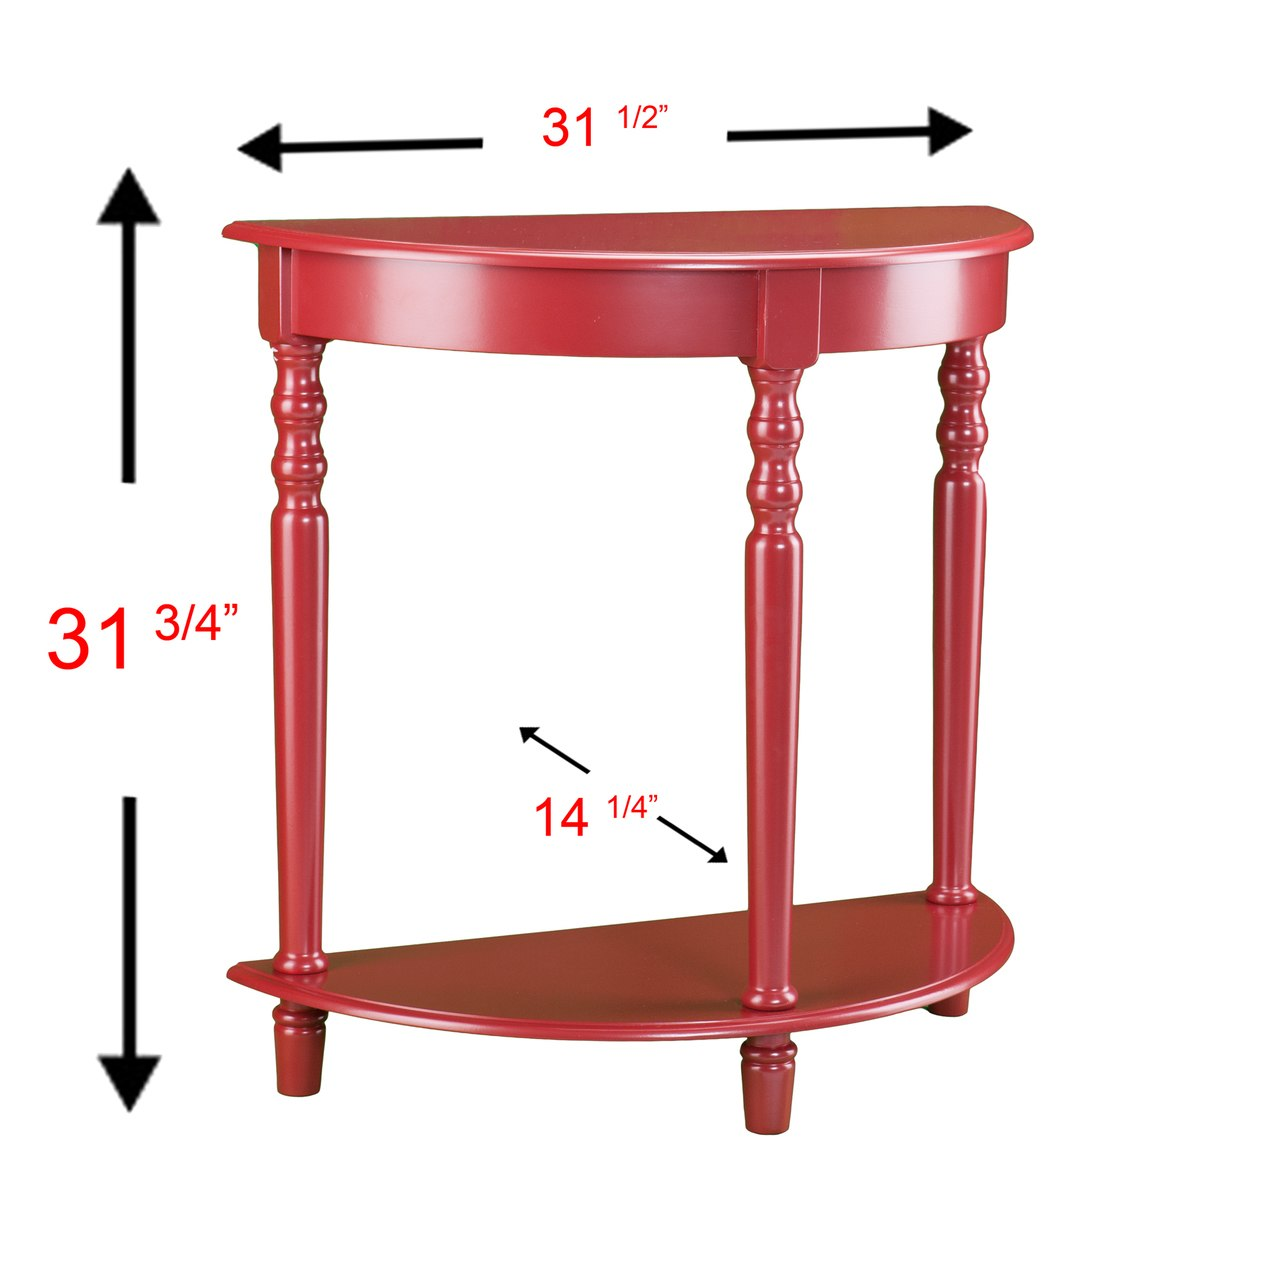 nero red accent table furniture metal card victorian couch led battery lights white sofa with storage narrow behind sterling and noble clock light wood end tables folding patio